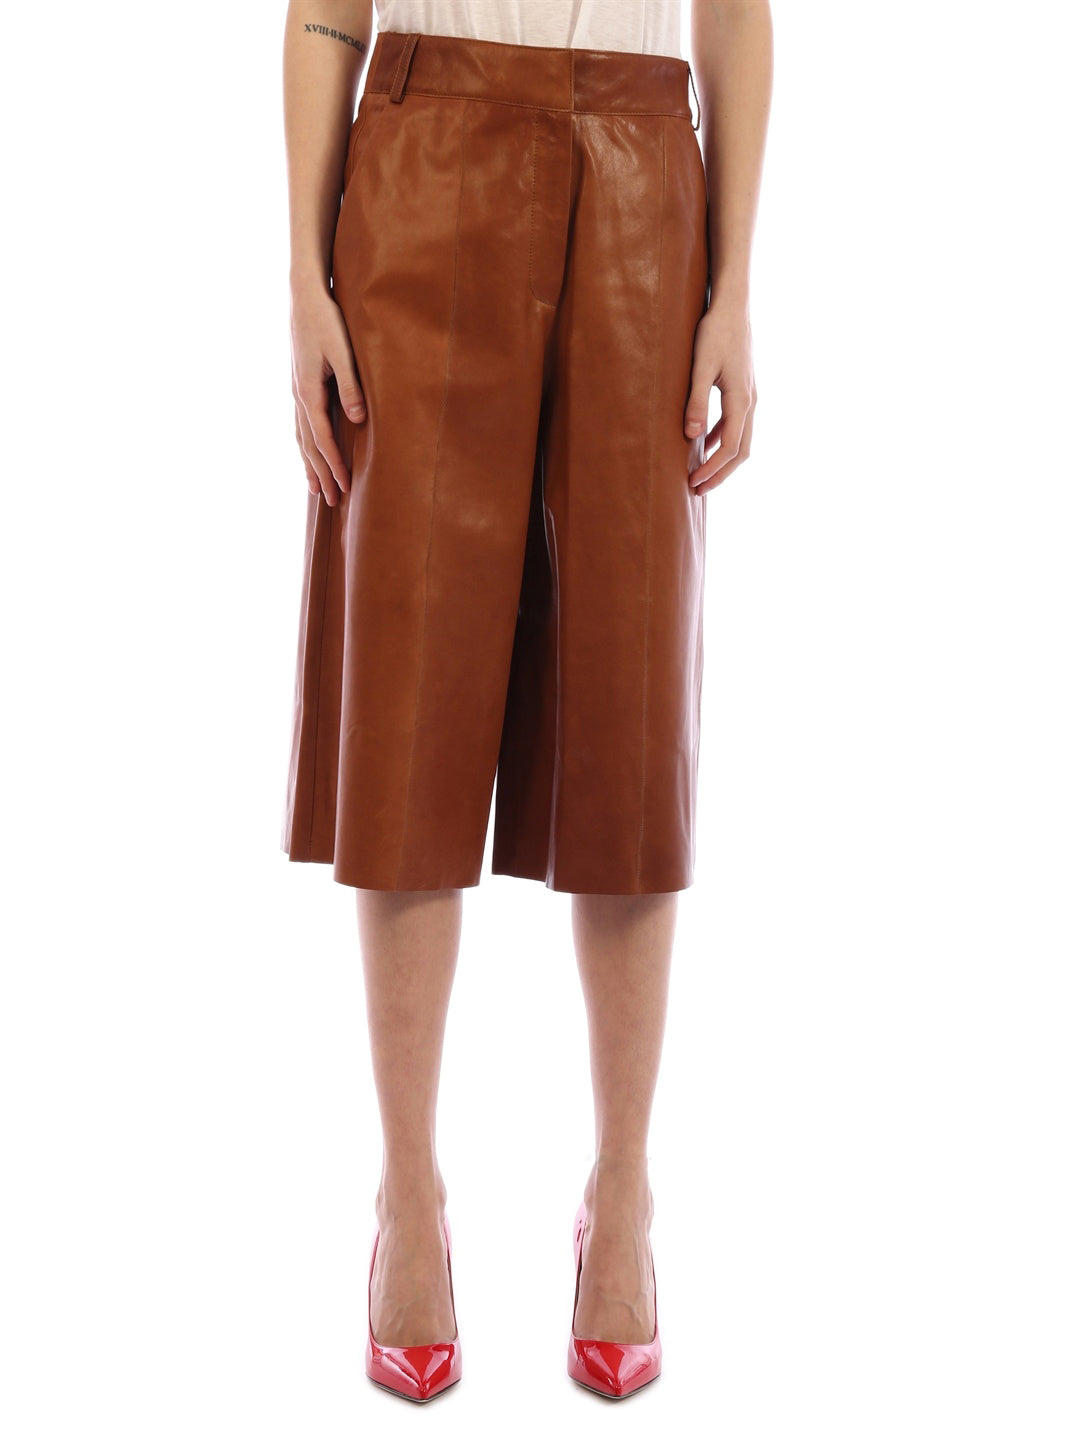 Arma ARMA LEATHER SHORTS